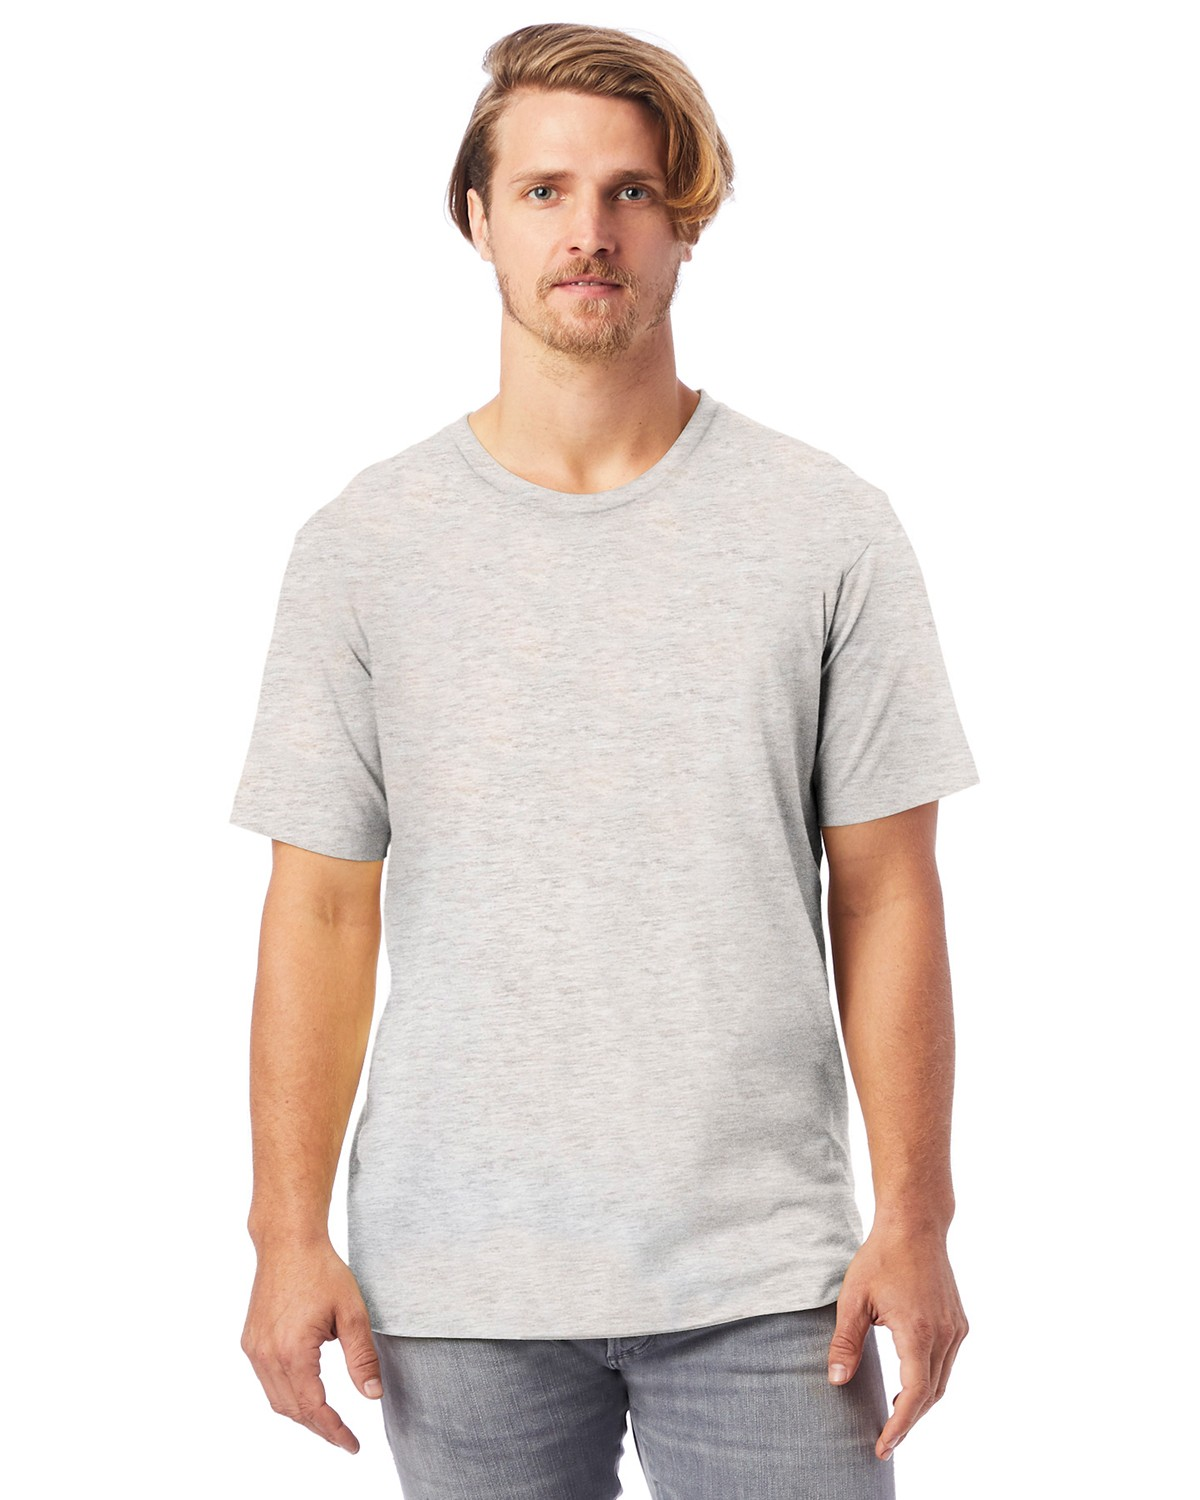 AA1070 Alternative LT HEATHER GREY